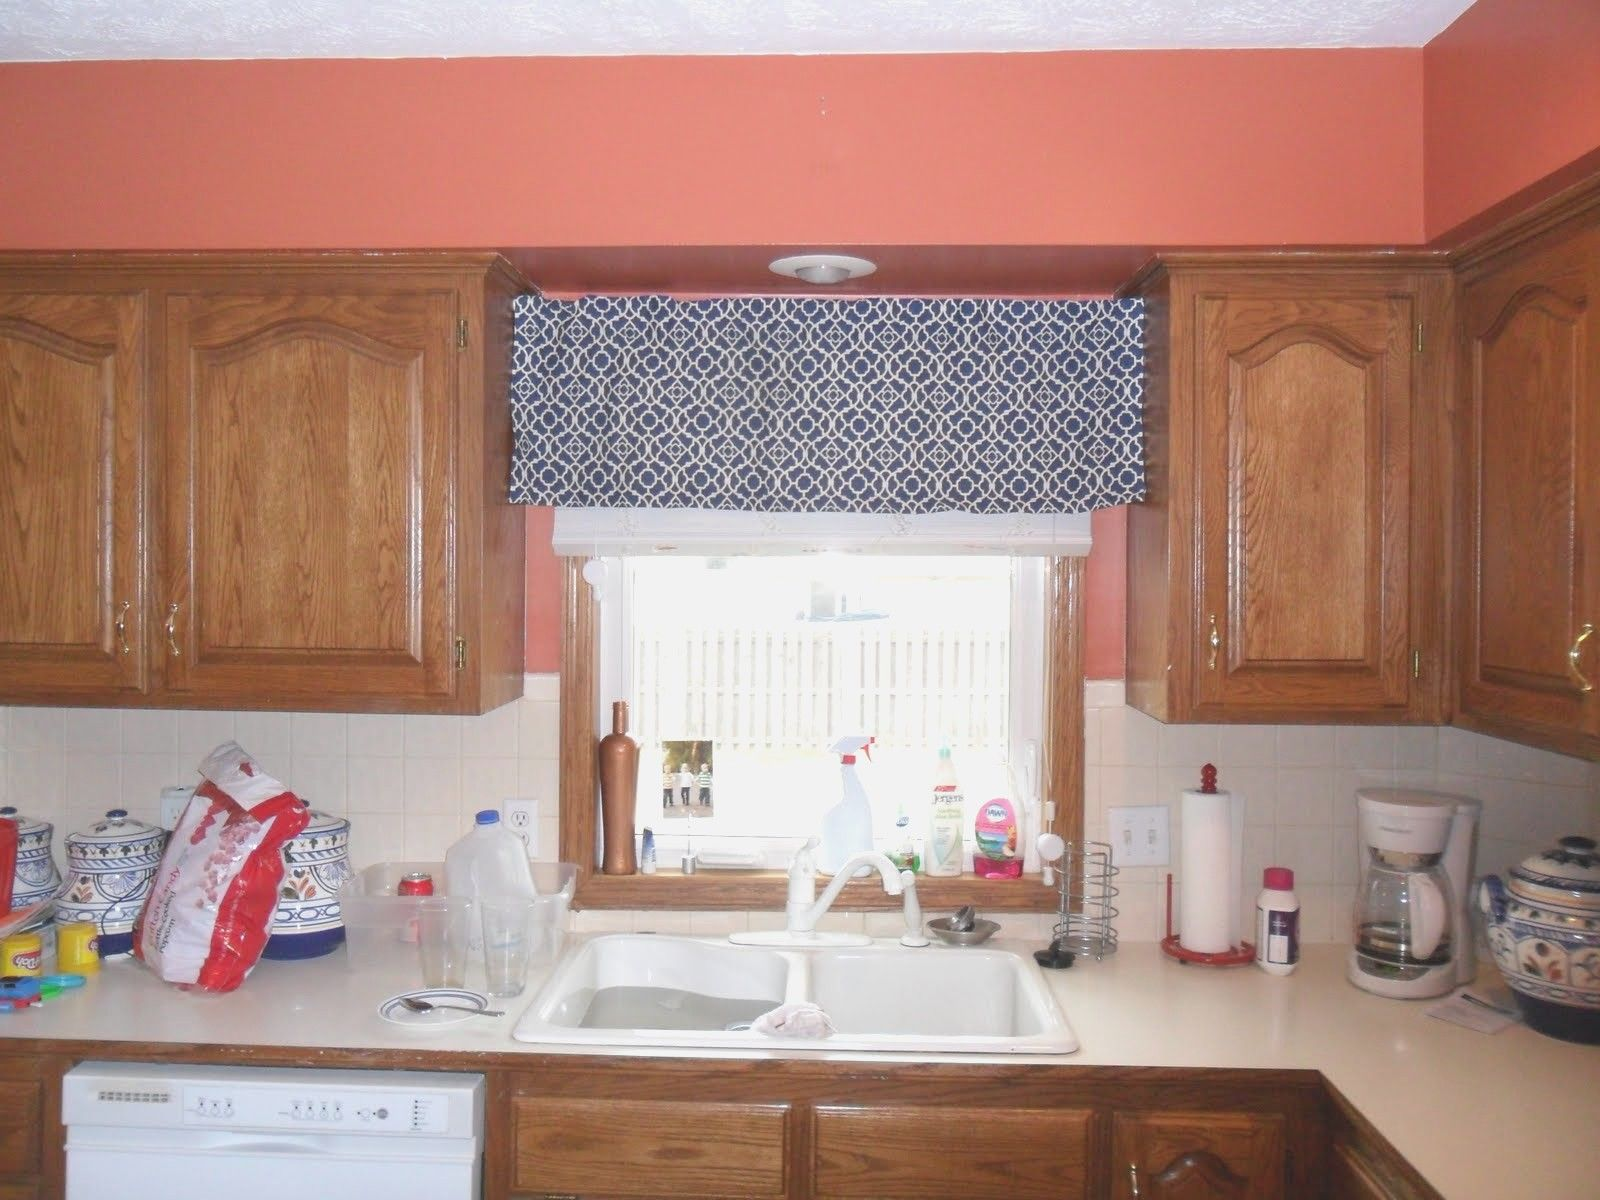 Kitchen window treatments  window treatment ideas for kitchen  kitchen window treatme window